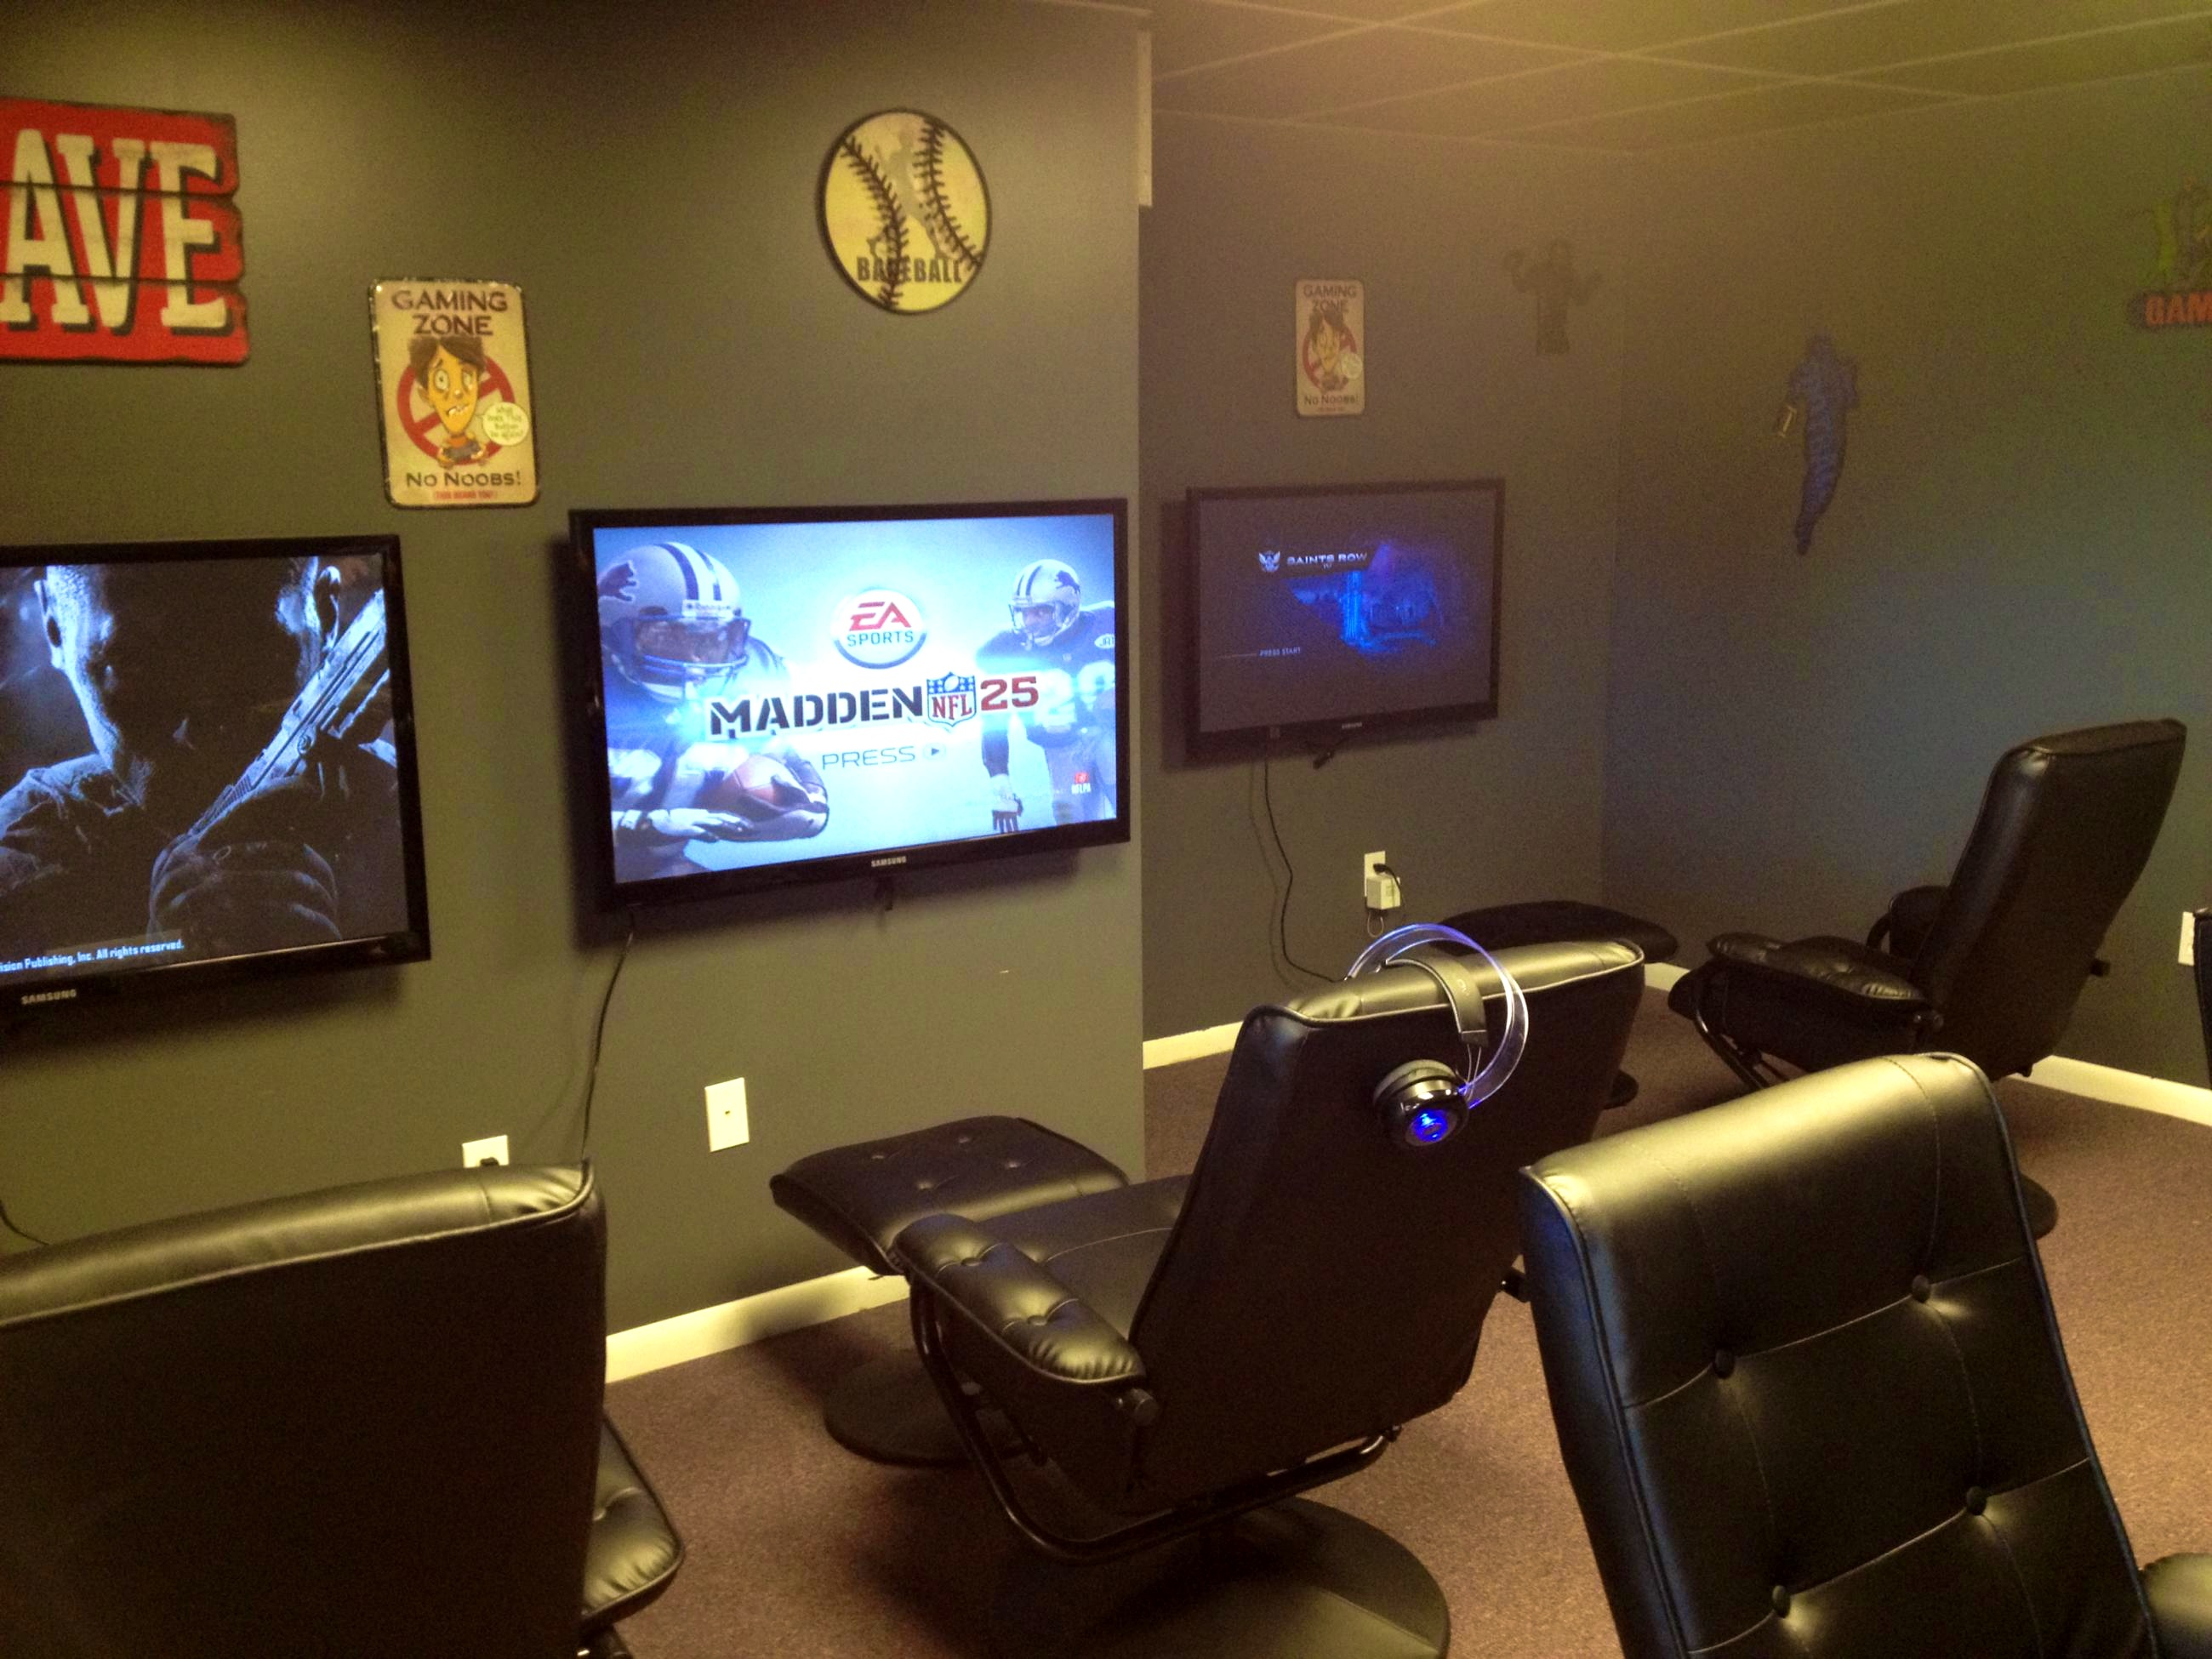 The amount of men compared with women in the world is roughly the same. 50 Video Game Room Ideas to Maximize Your Gaming Experience